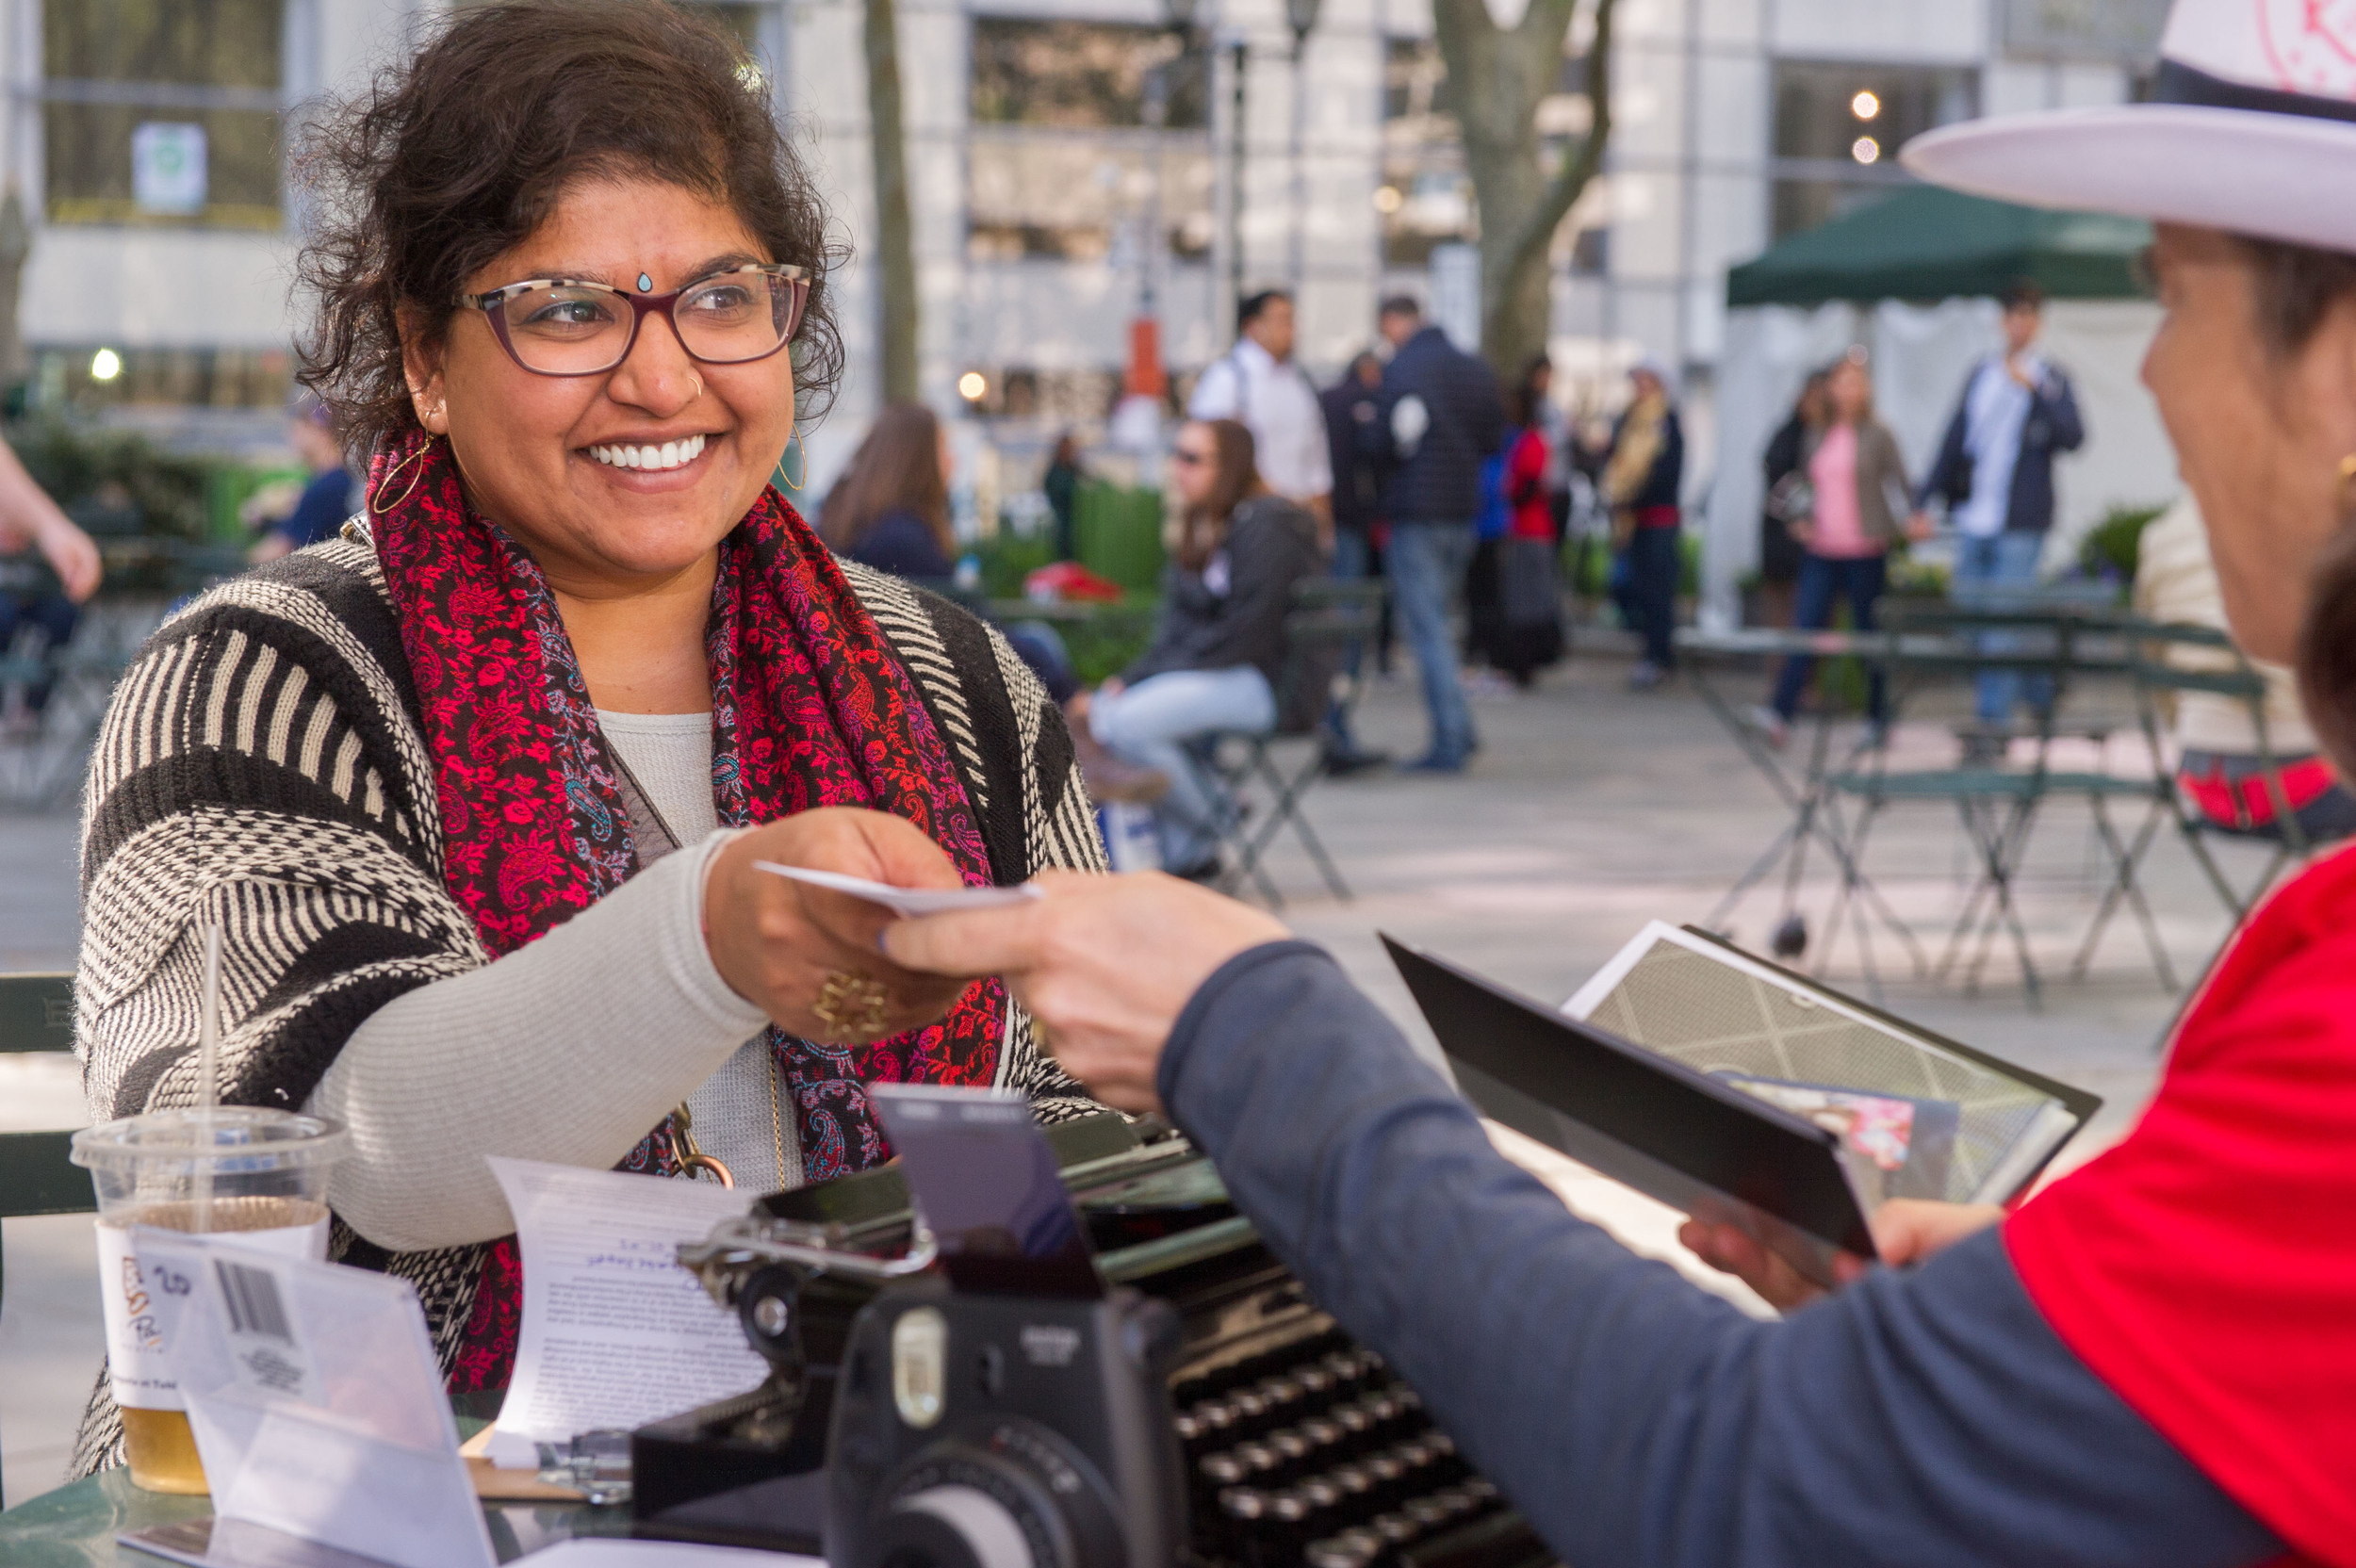 Sheetal Prajapati dictated a message at Bryant Park. Photo by Christian Carter-Ross.